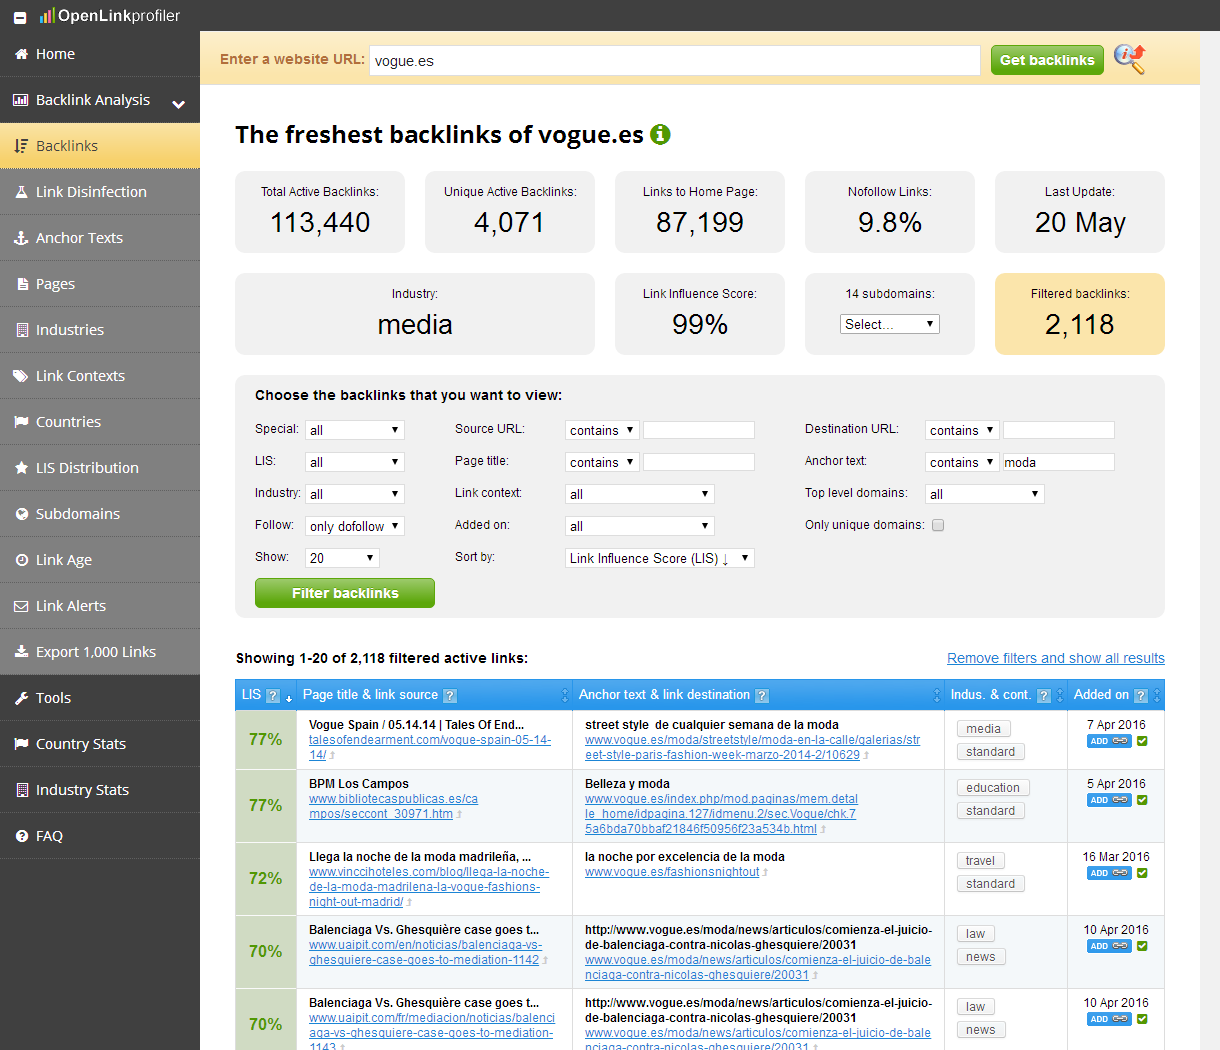 Resultados de backlinks